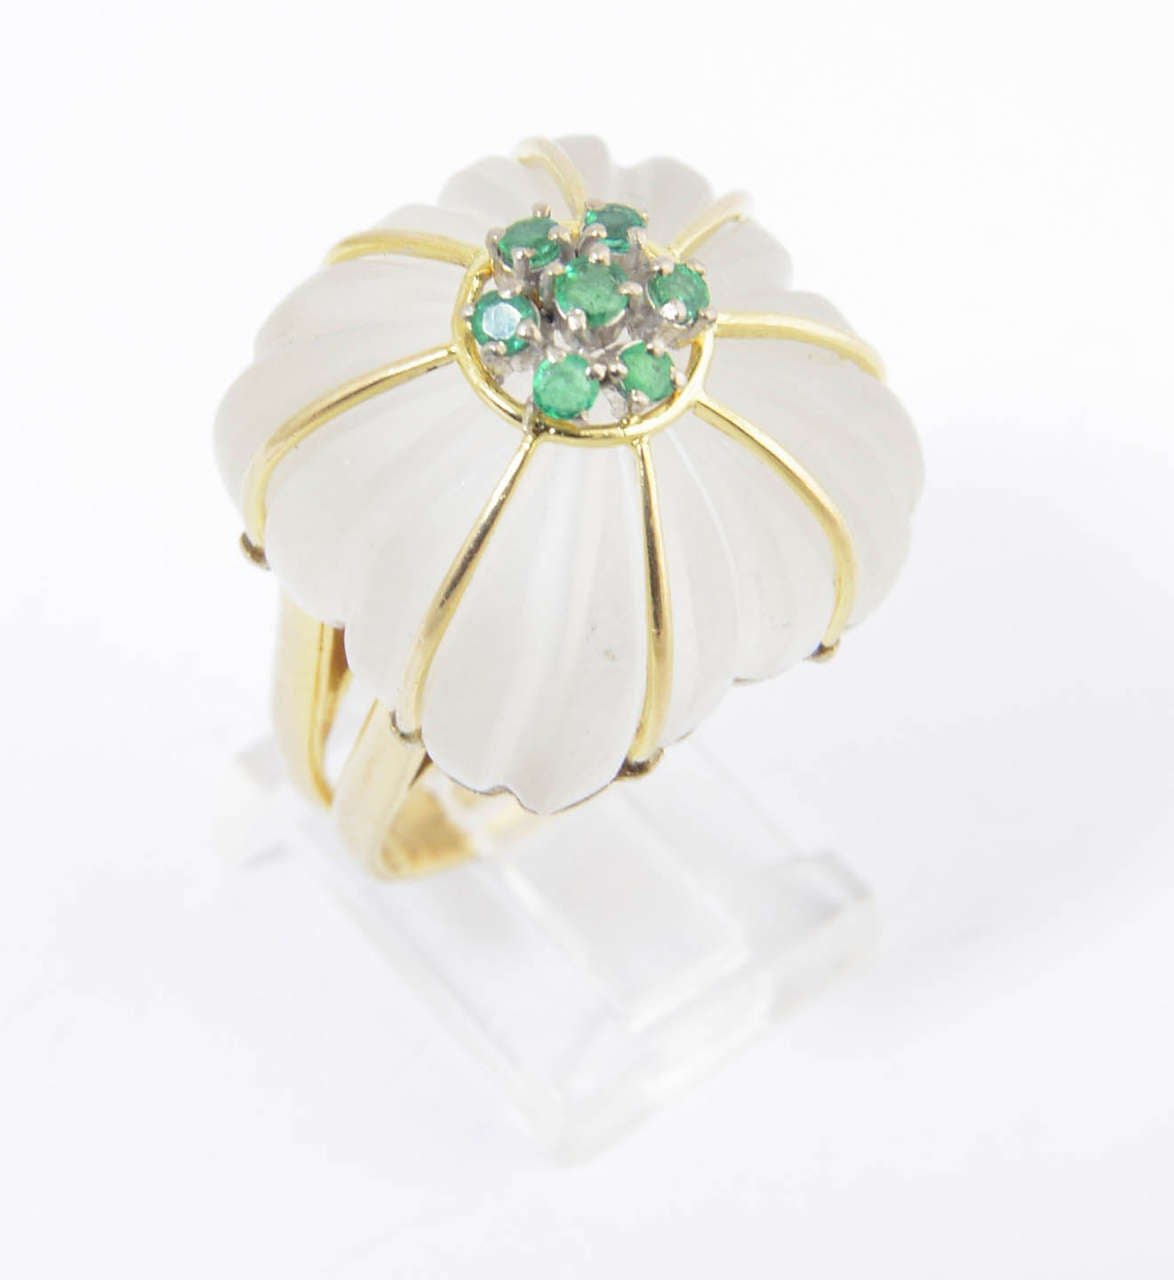 1970s Carved Rock Crystal Emerald Gold Ring For Sale 2